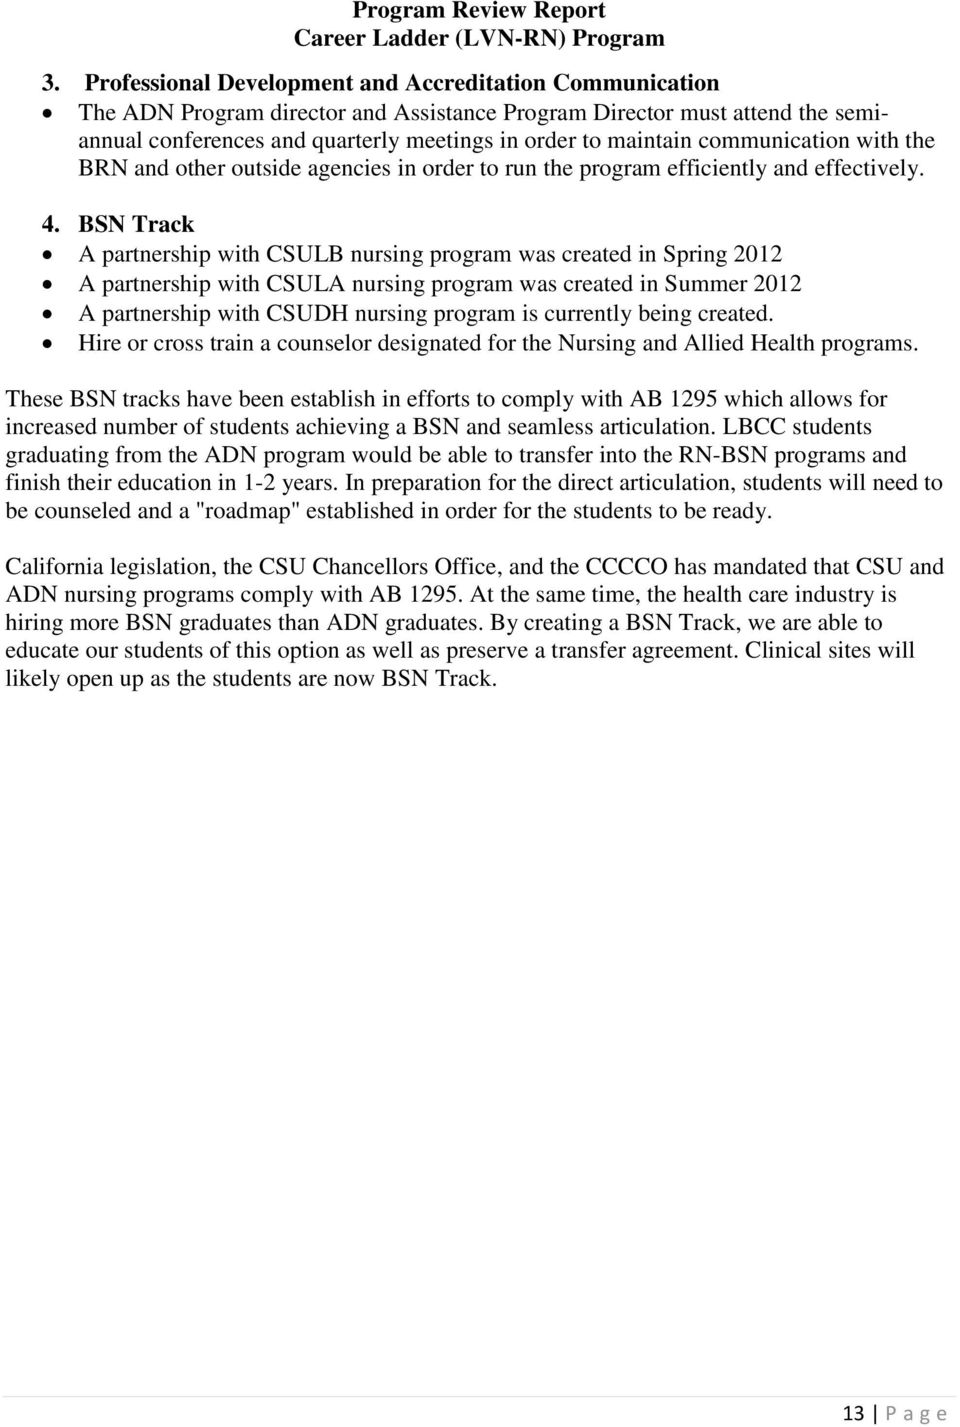 BSN Track A partnership with CSULB nursing program was created in Spring 2012 A partnership with CSULA nursing program was created in Summer 2012 A partnership with CSUDH nursing program is currently